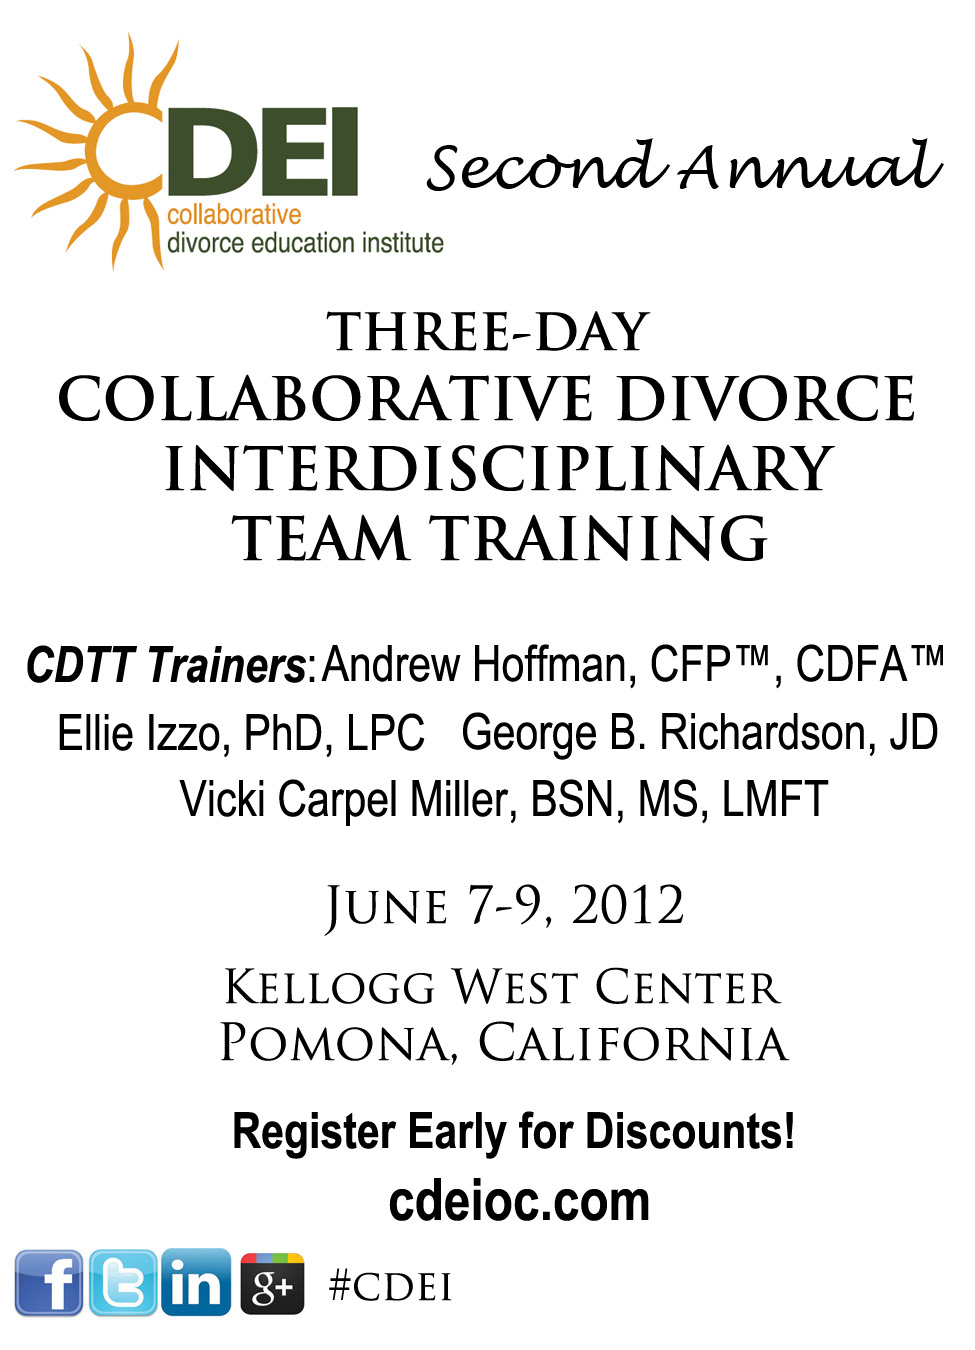 Collaborative Teaching Courses : The collaborative divorce education institute is offering